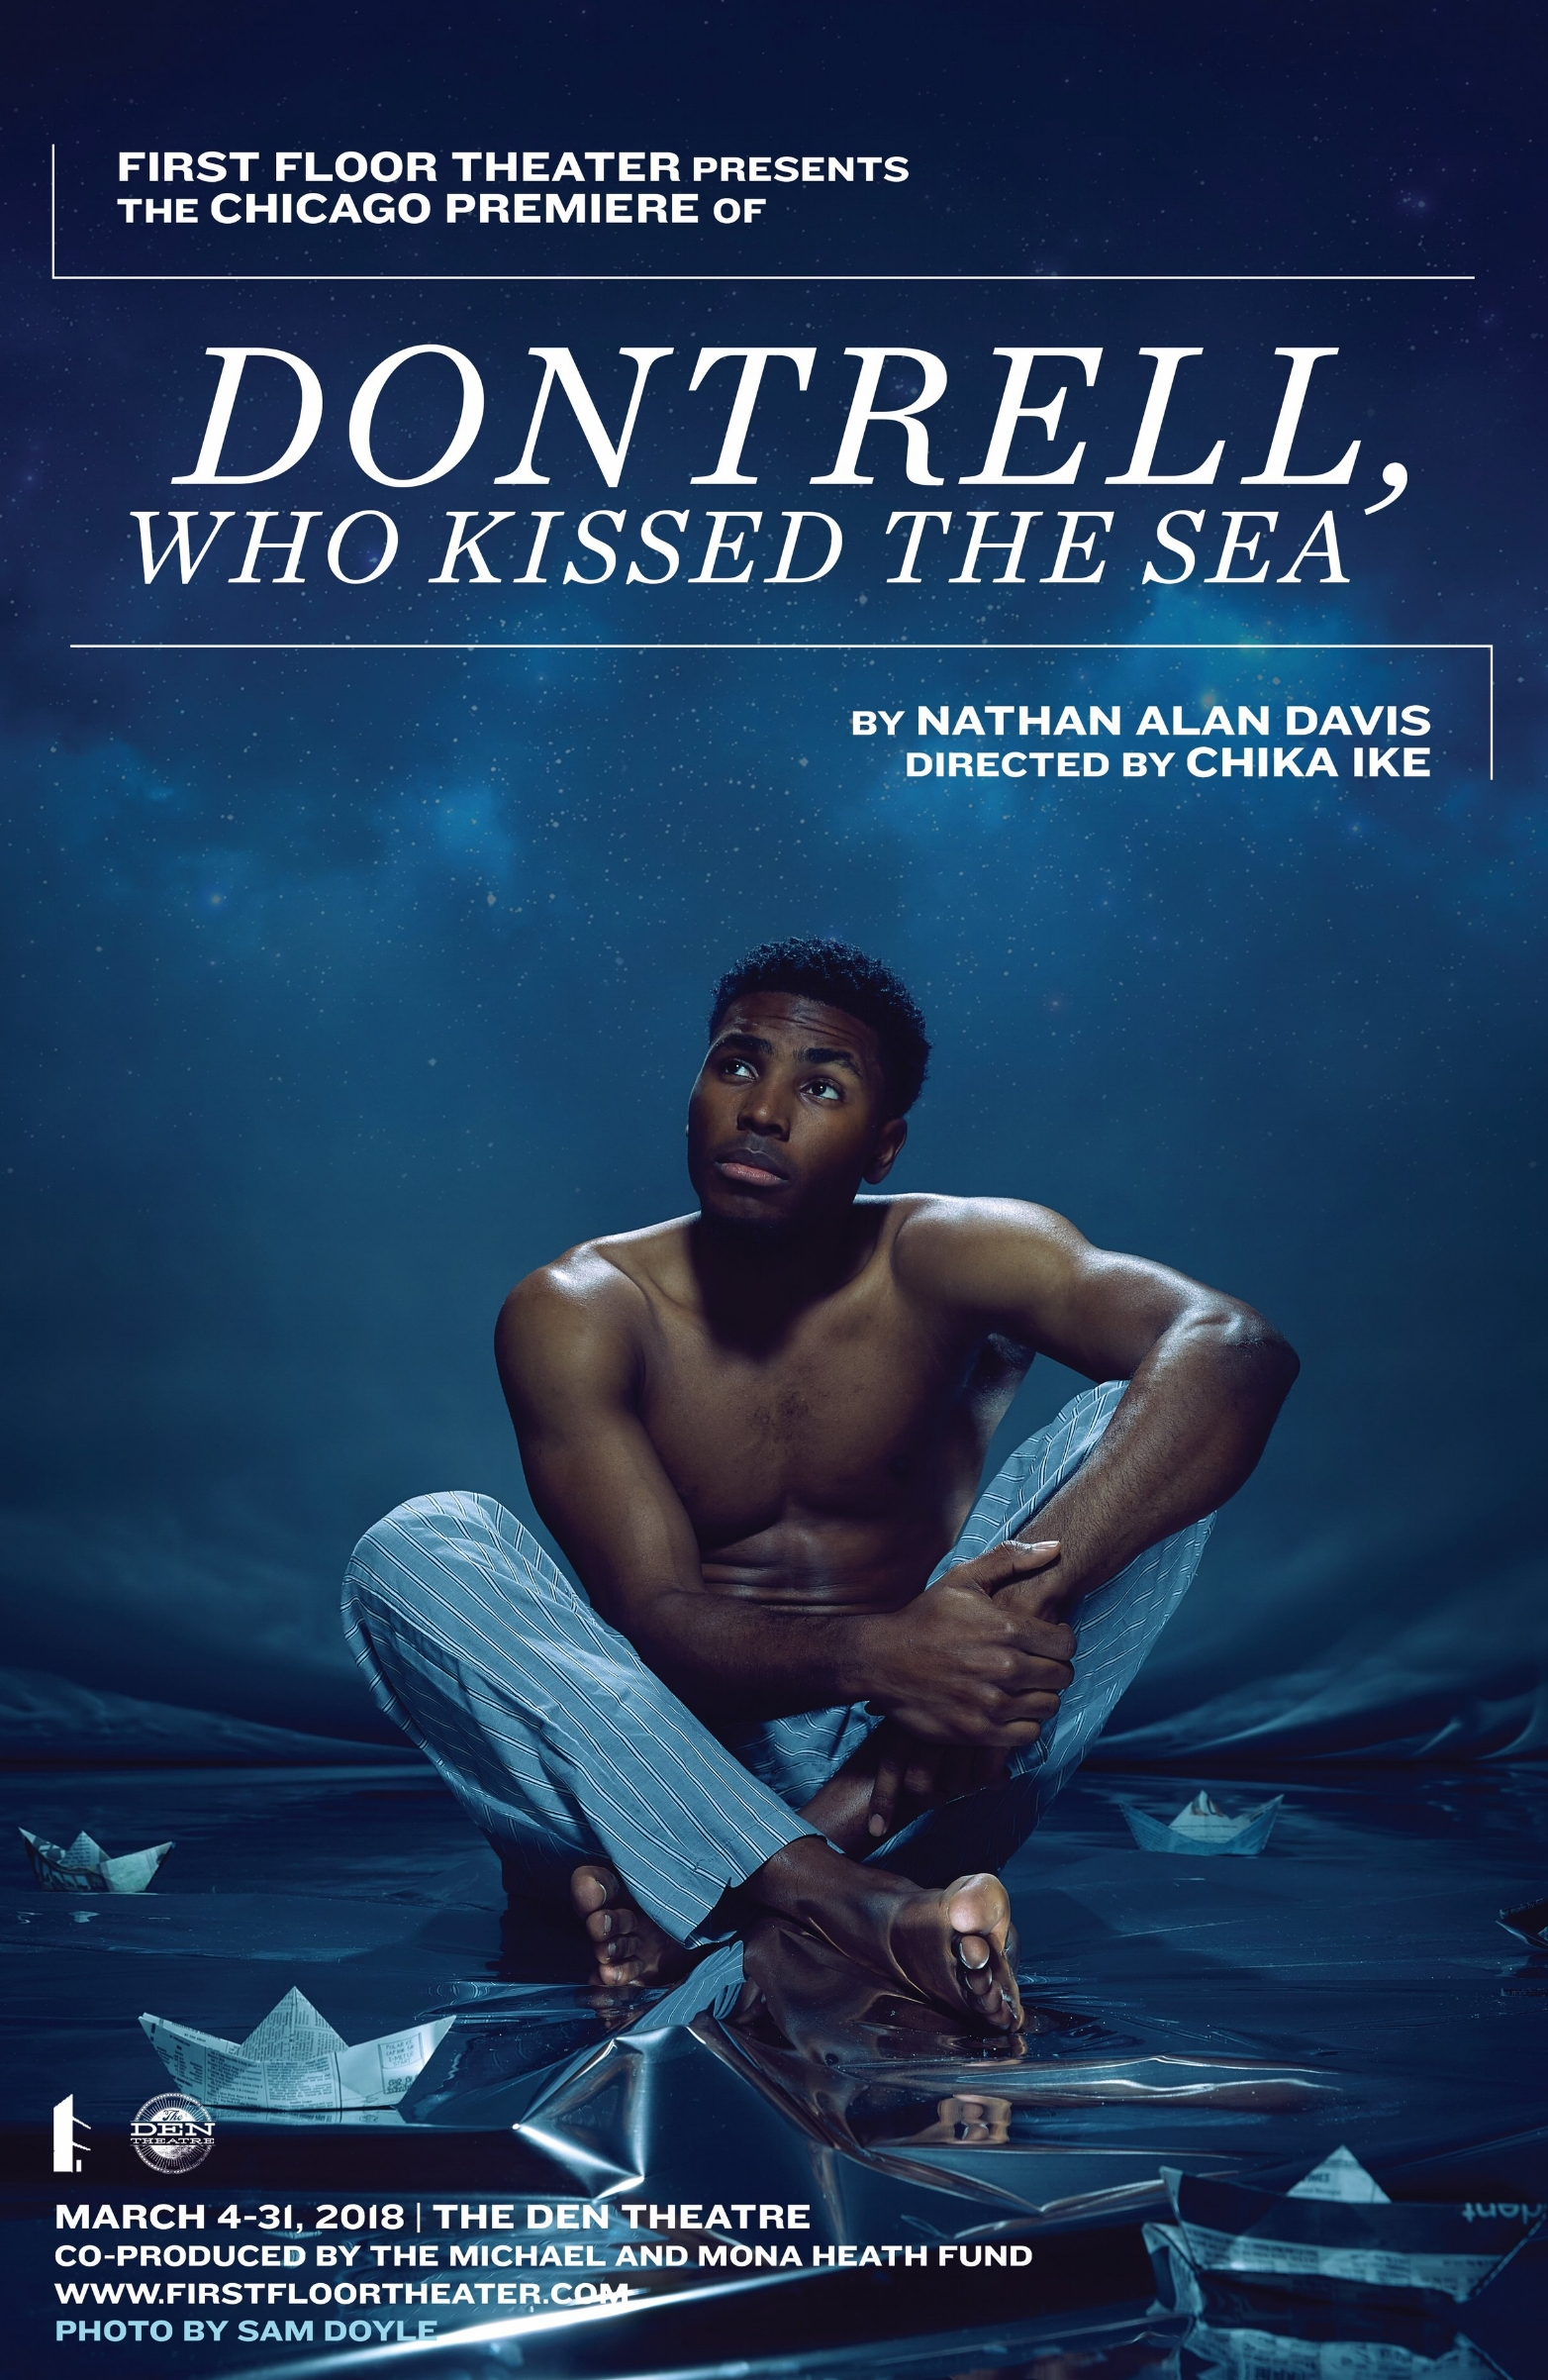 Copy of Dontrell Who Kissed the Sea 5.1 bleed.jpg